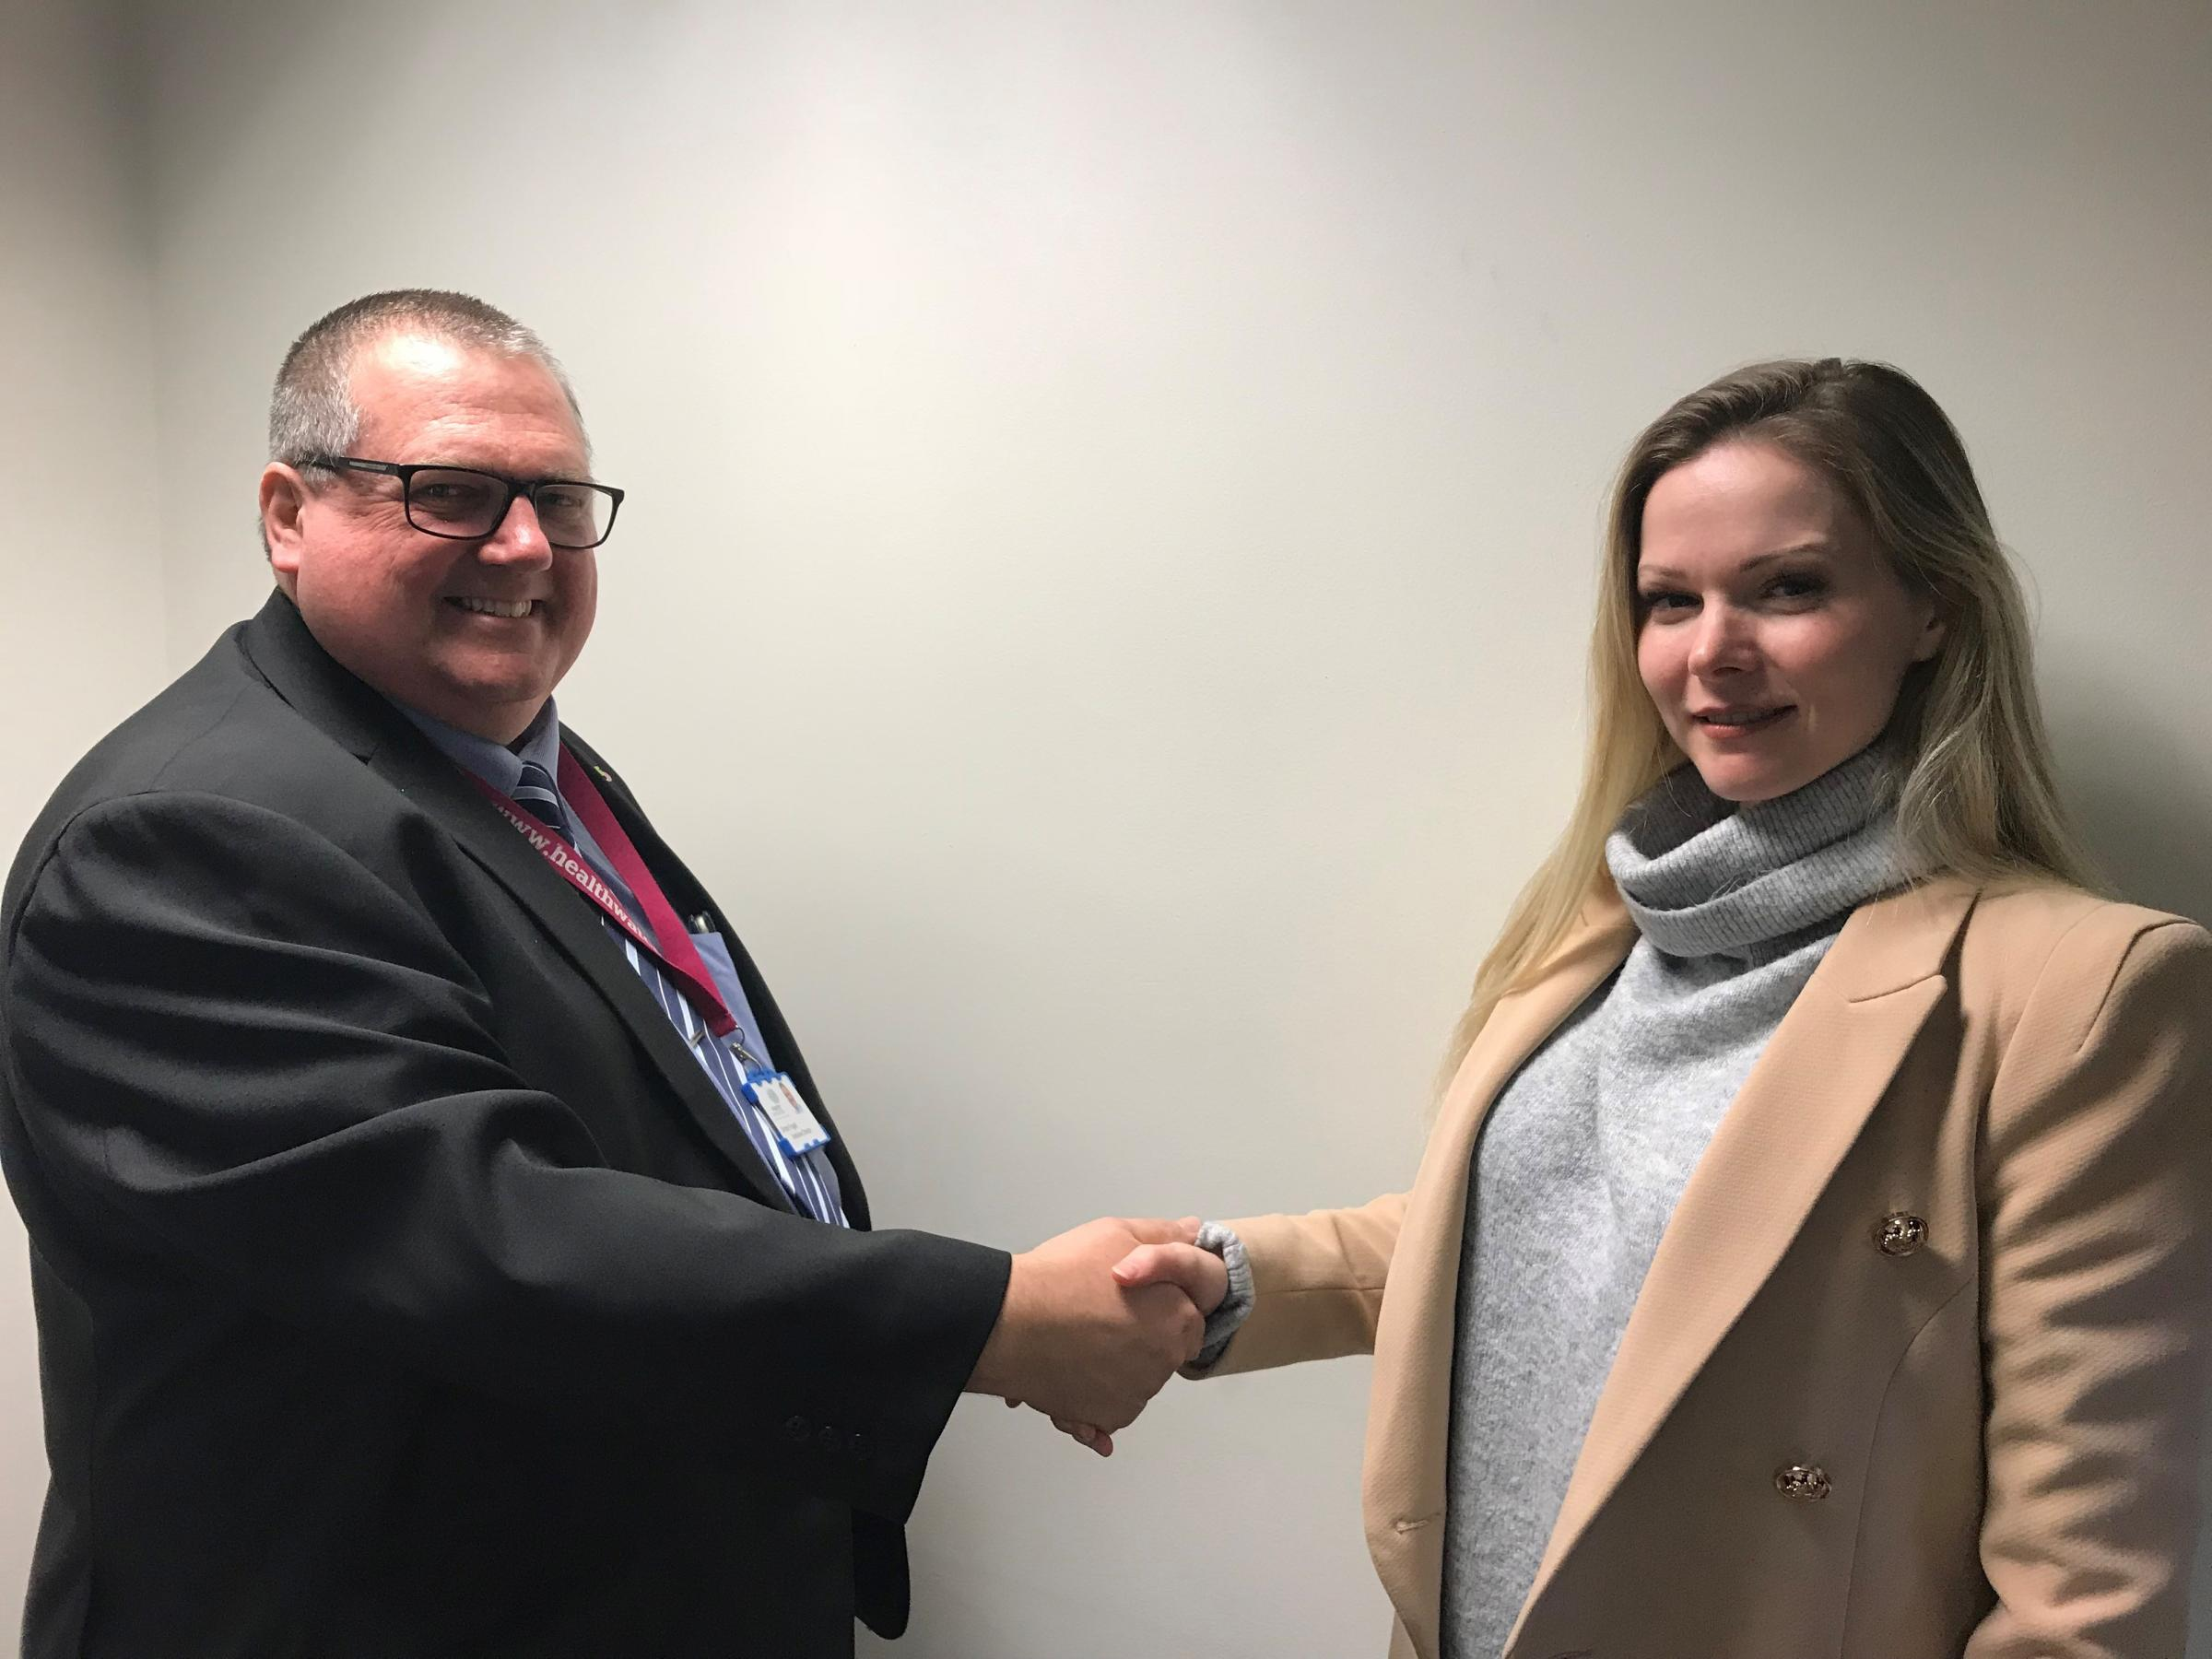 Simon Fogell, executive director of Engaging Communities (ECS) welcoming Ruth Marie Dales as chair of Healthwatch Warrington Advisory Board